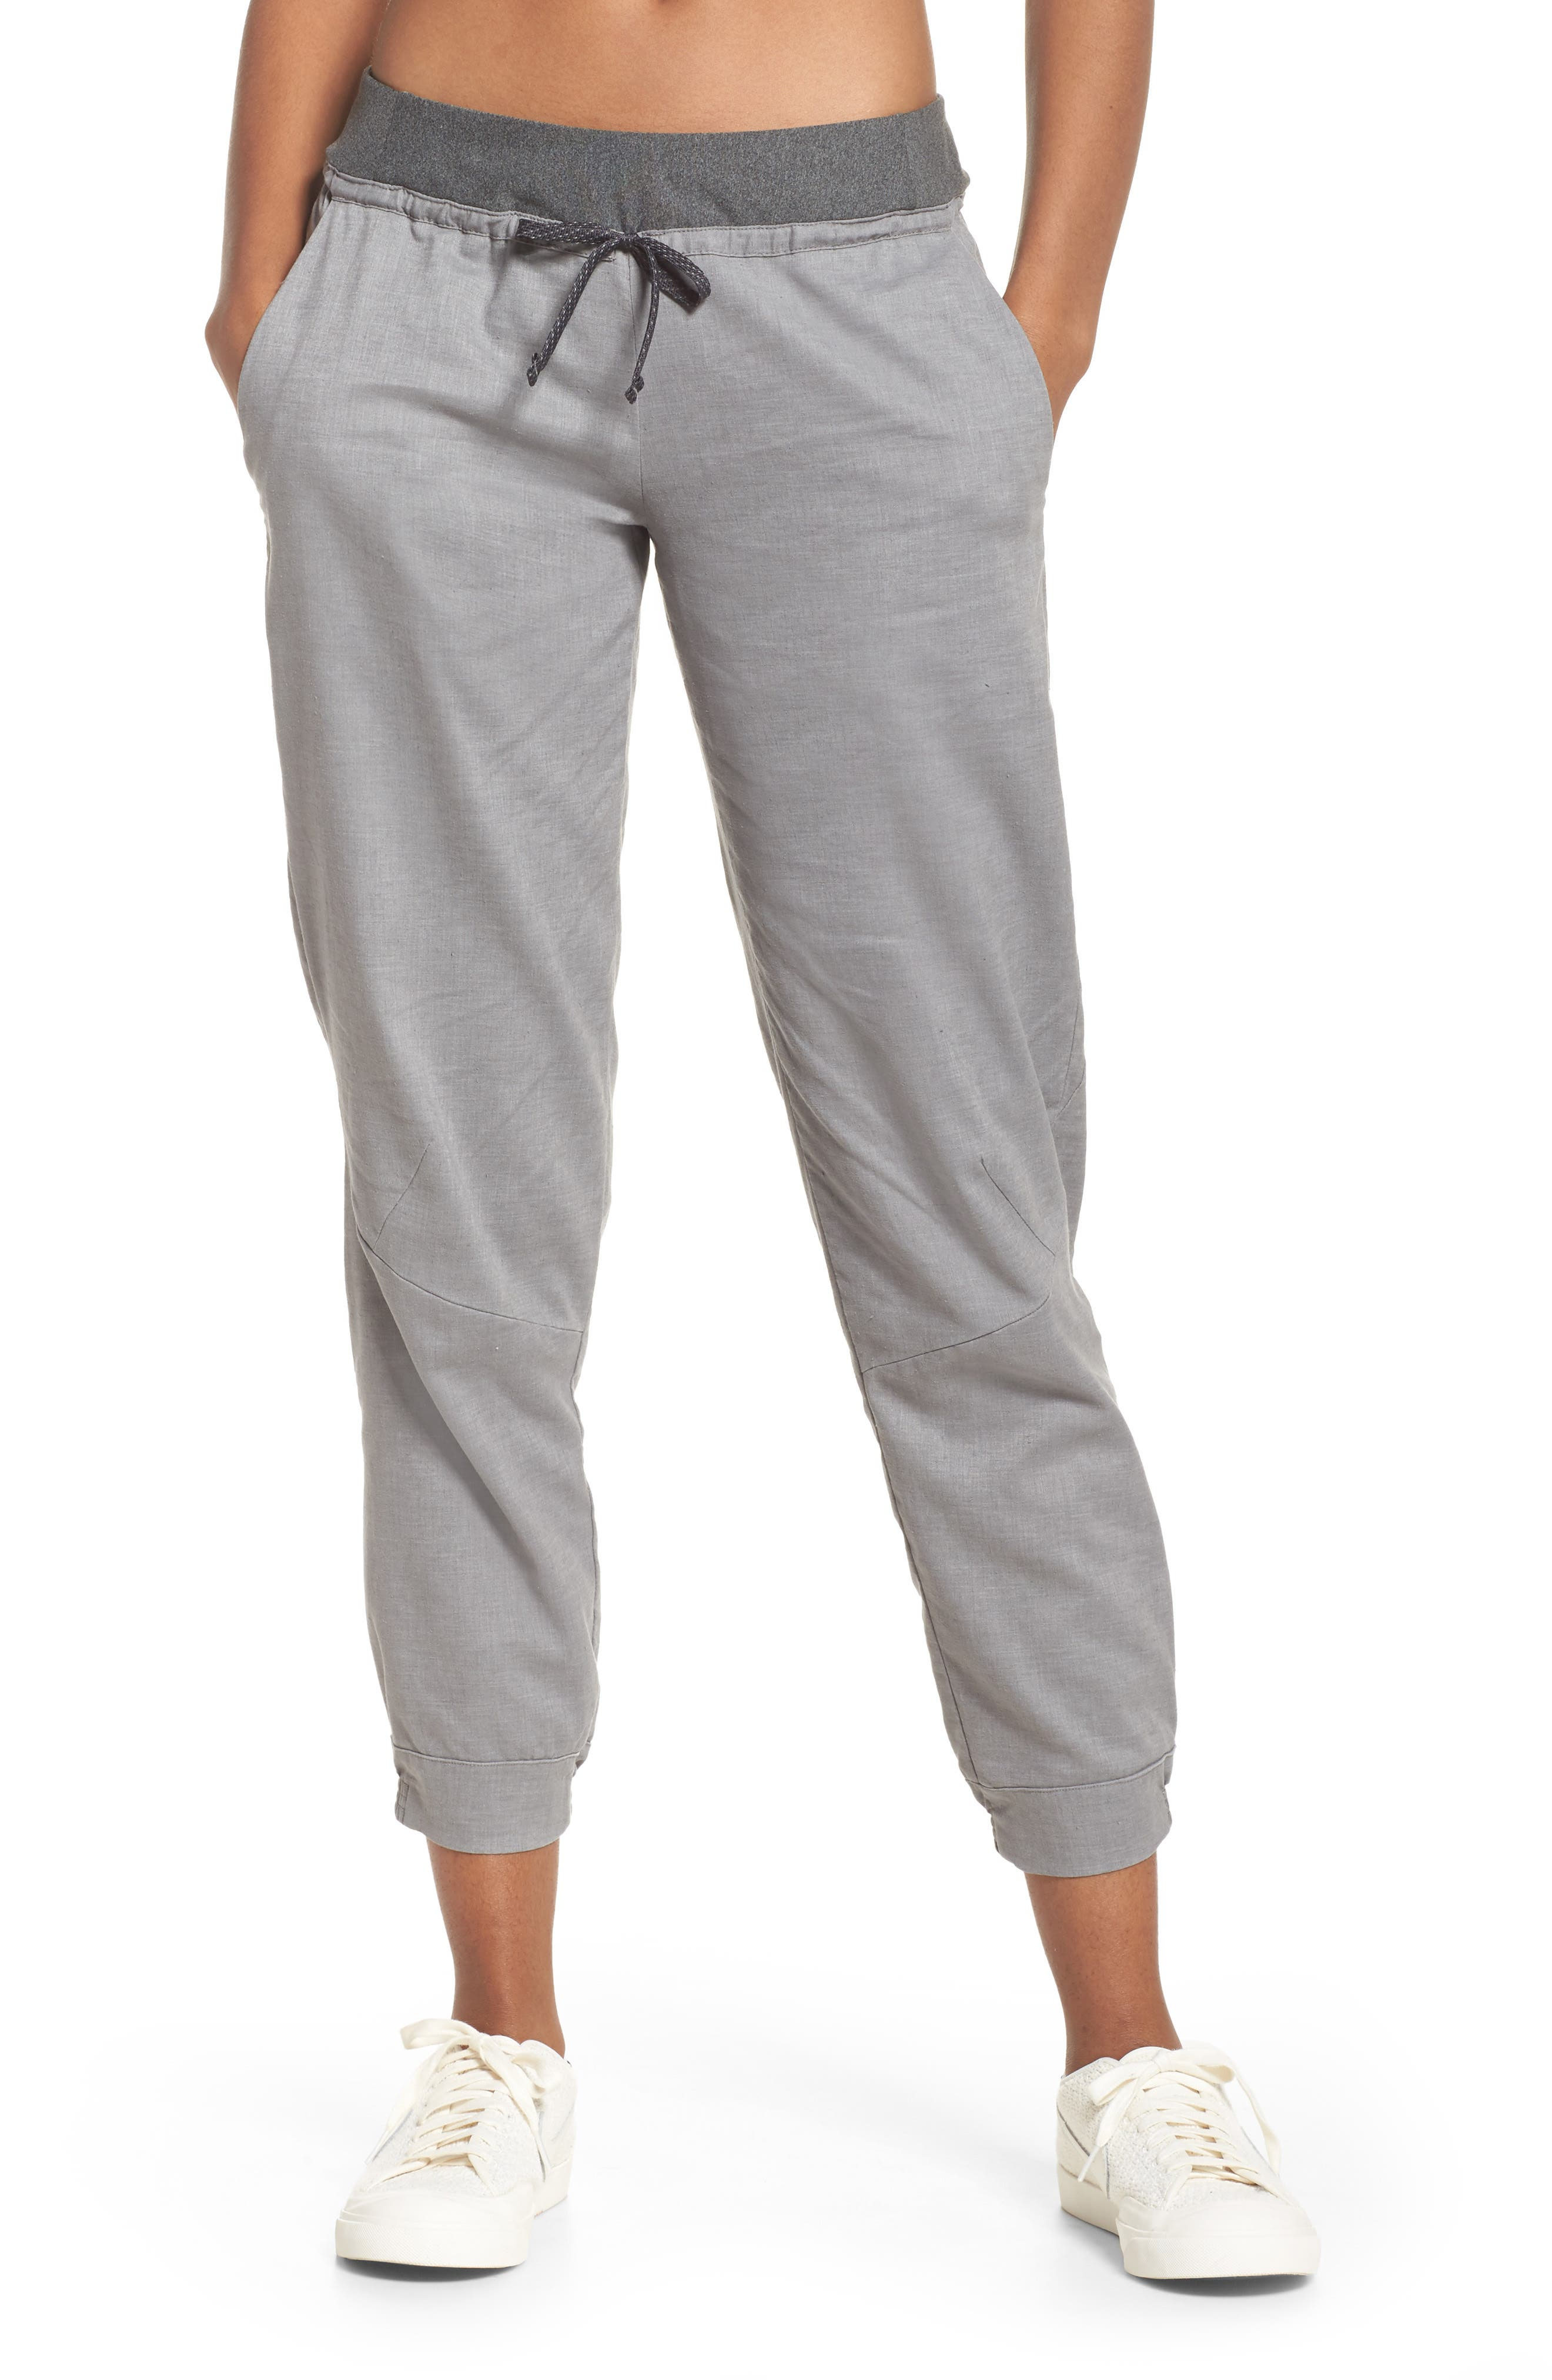 Women's Hampi Rock Pants, Main, color, FEATHER GREY